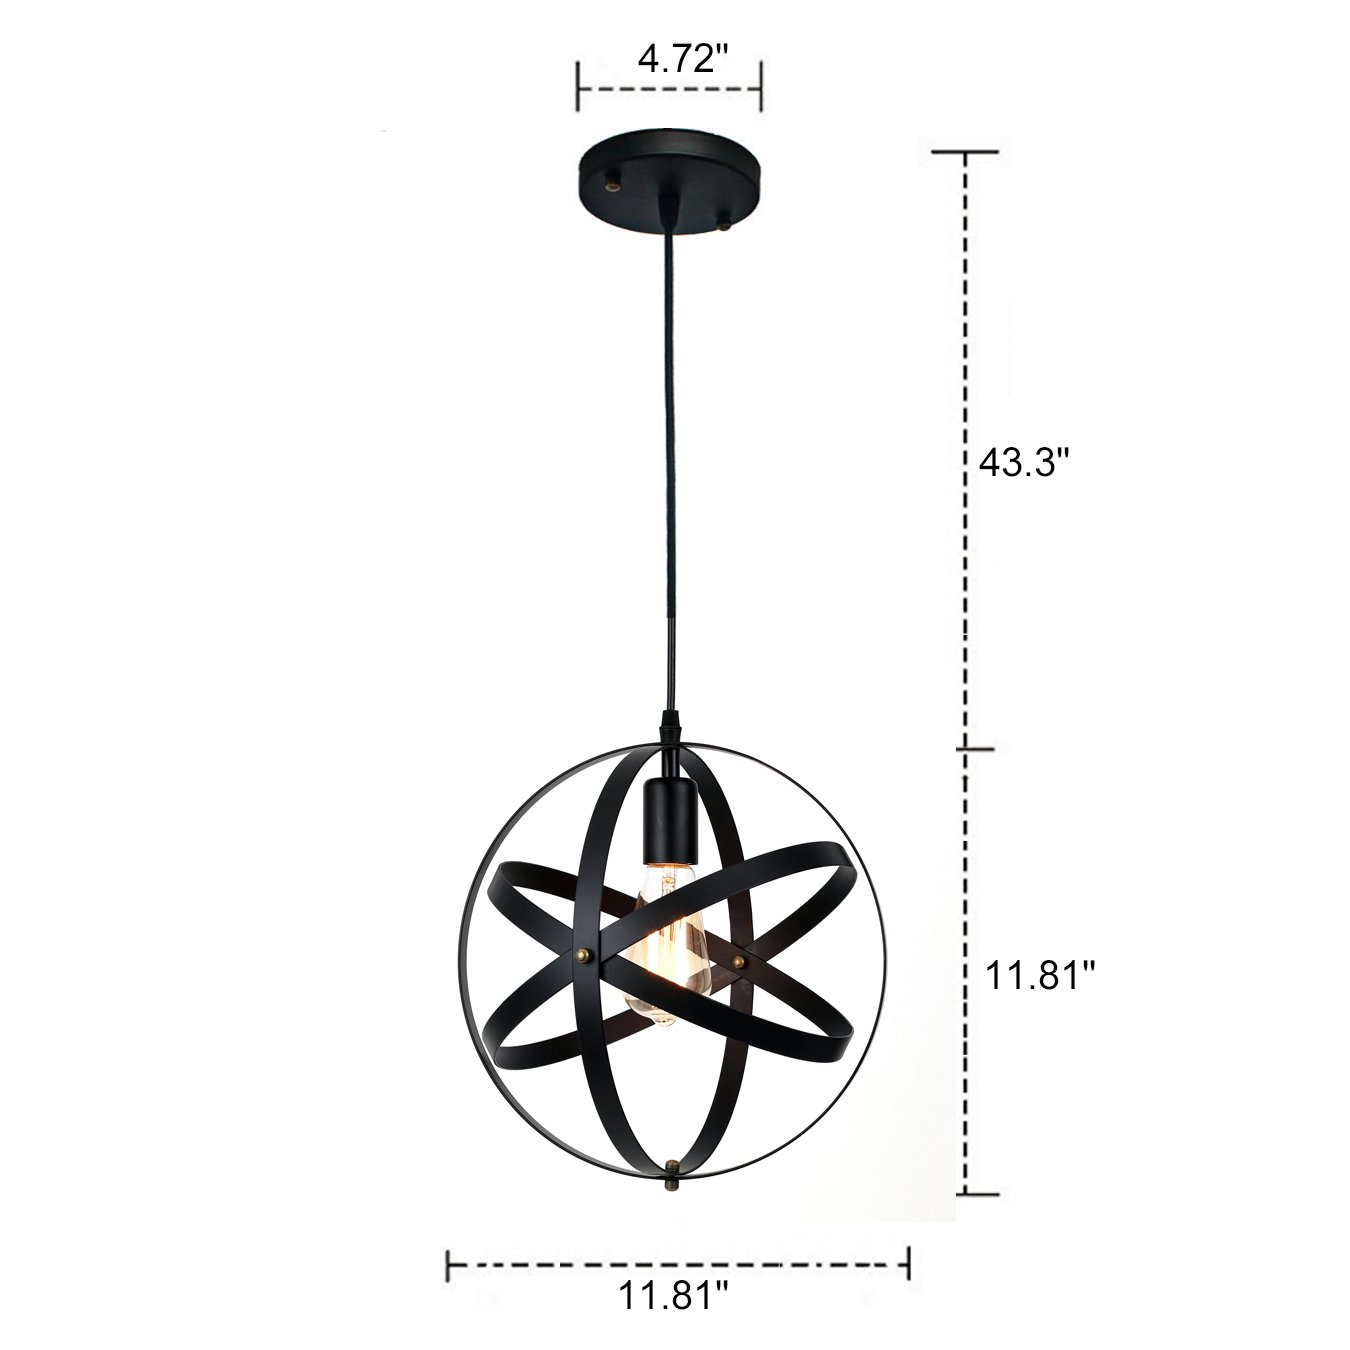 Pauwer Industrial Spherical Pendant Light Vintage Sphere Chandelier Lighting Glob Hanging Light Fixtures (Black B) by Pauwer (Image #2)